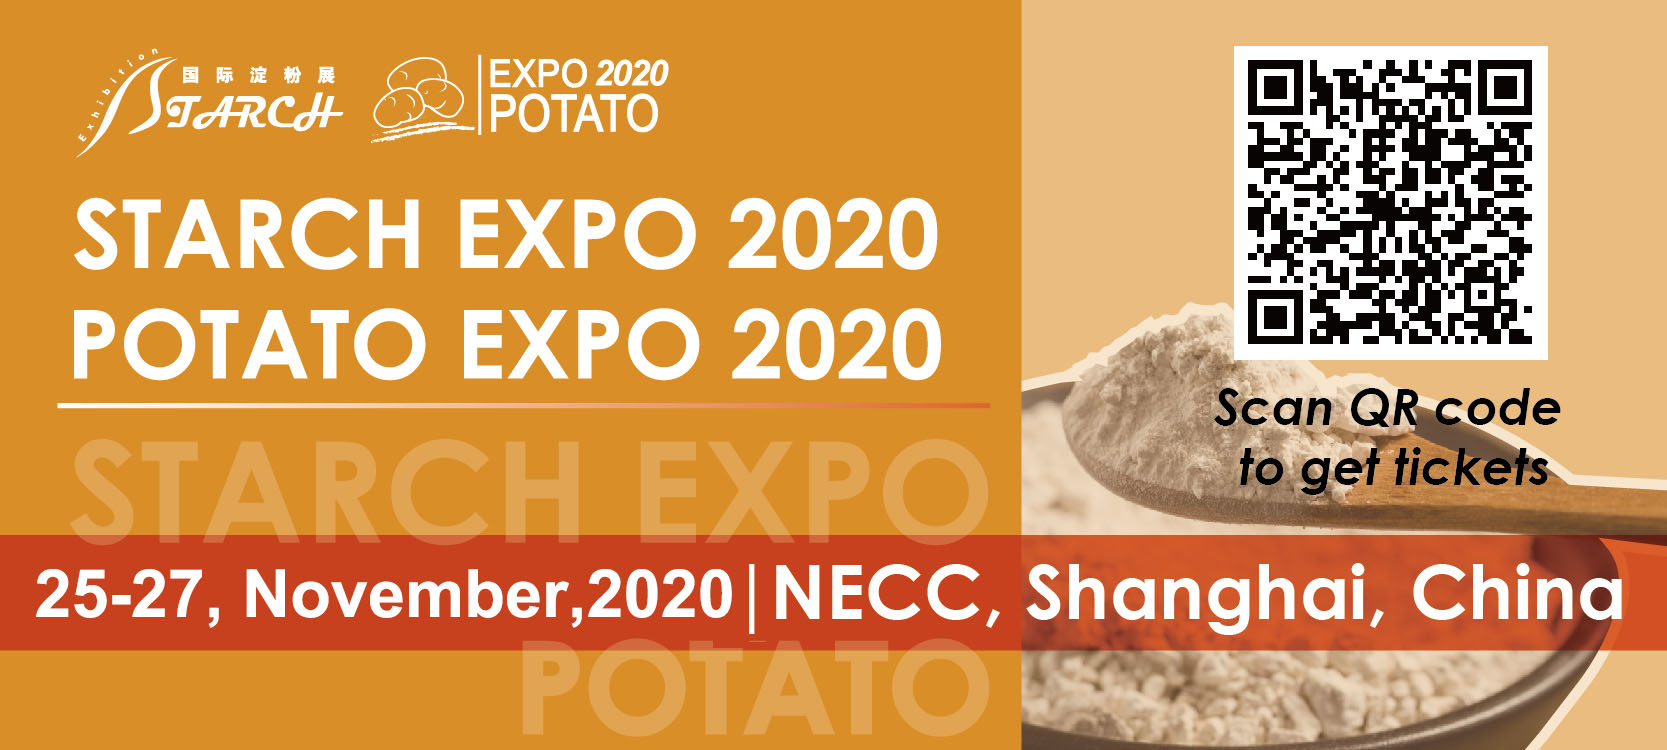 Starch Expo 2020